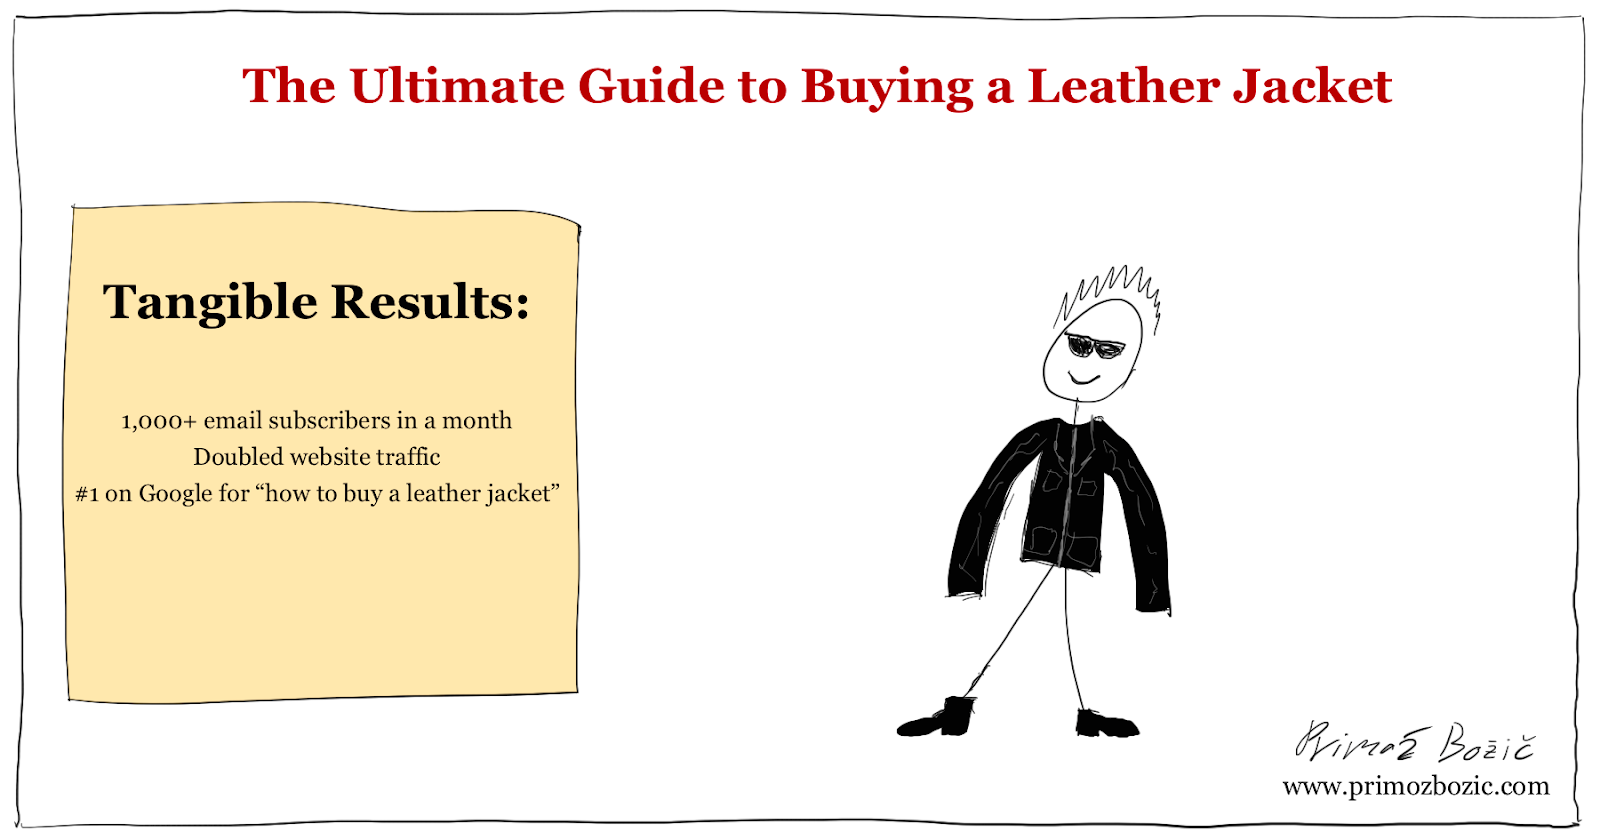 Ultimate Guide Example Buying a Leather Jacket